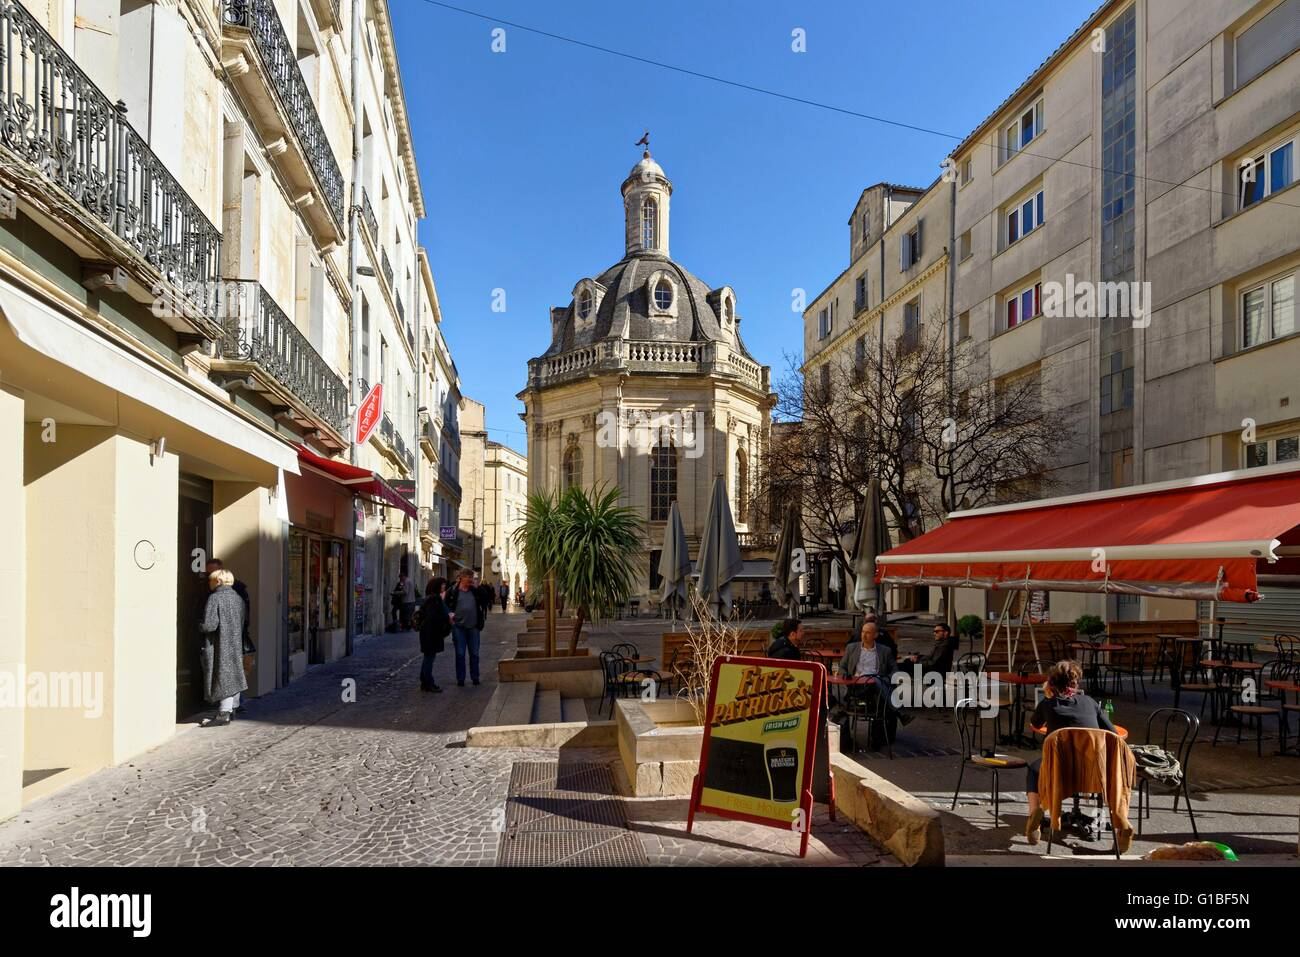 france herault montpellier historical center the ecusson place stock photo royalty free. Black Bedroom Furniture Sets. Home Design Ideas